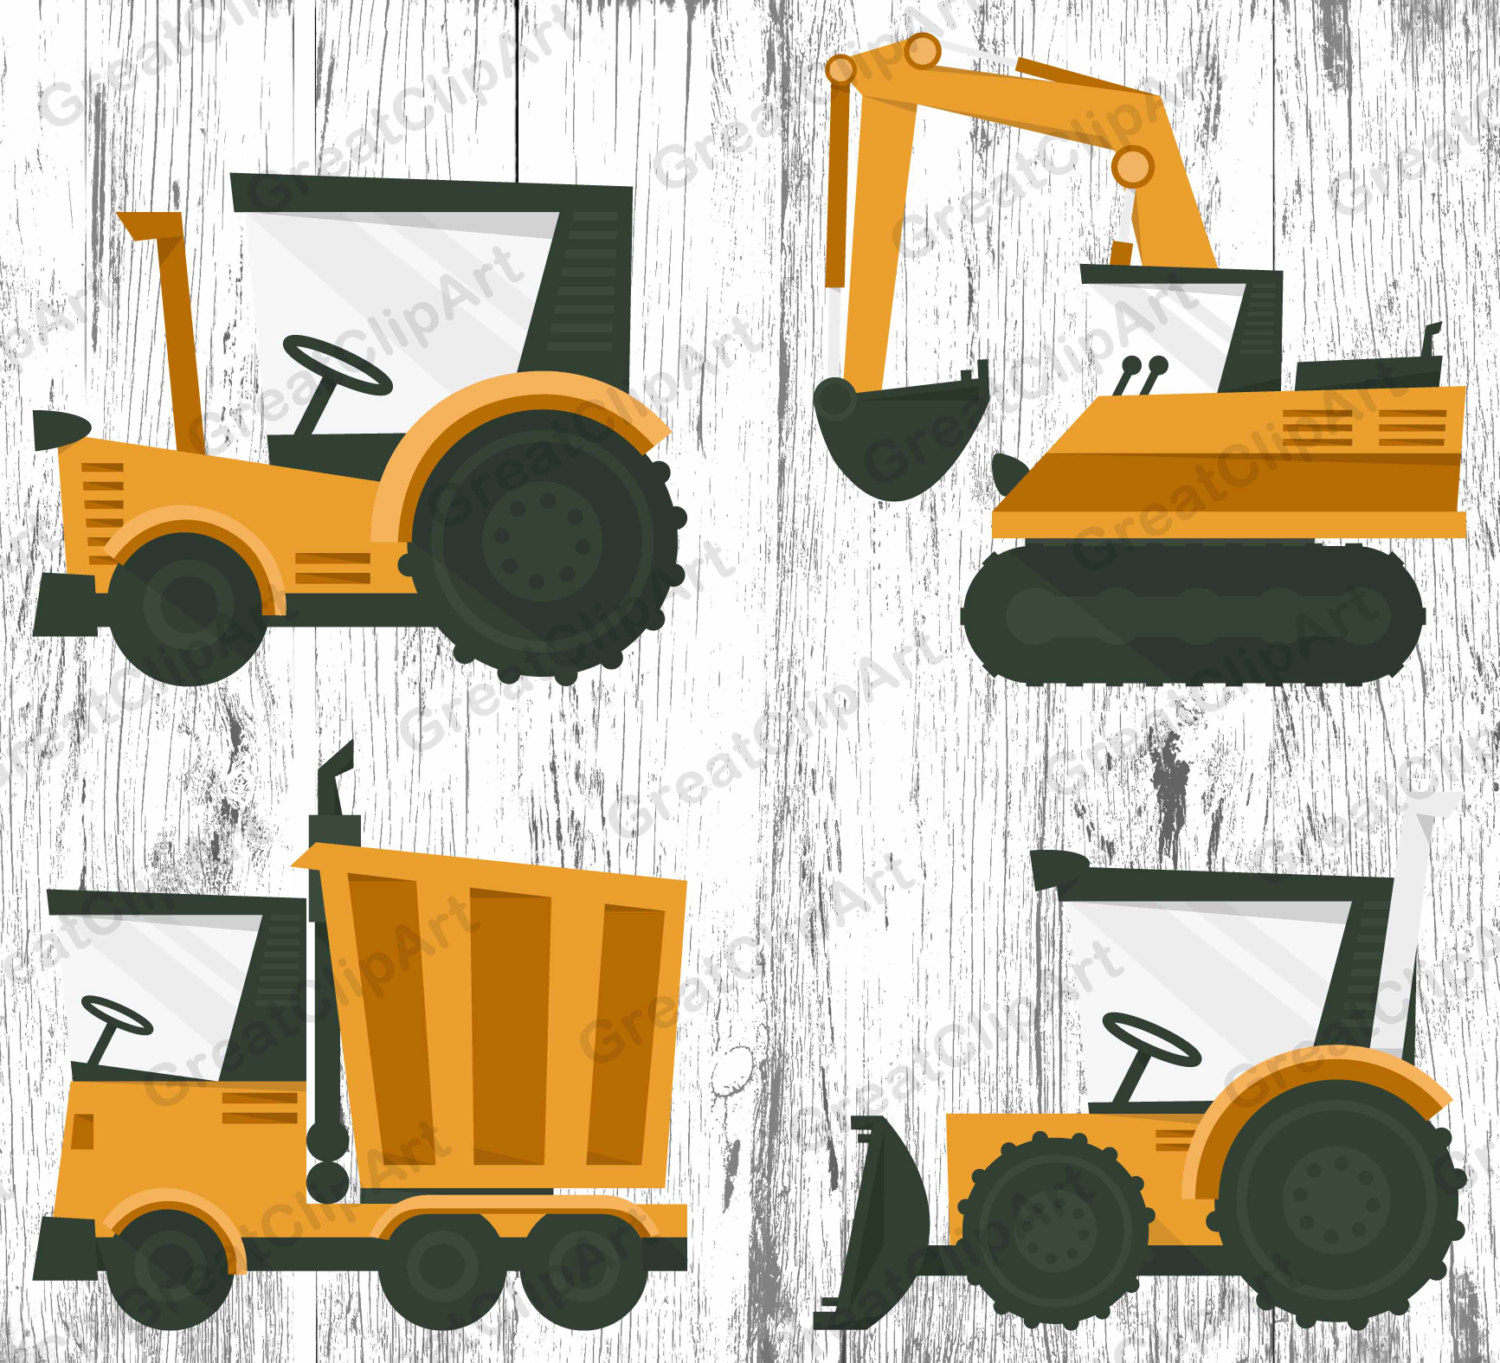 Excovator clipart construction project This file clipart digital truck